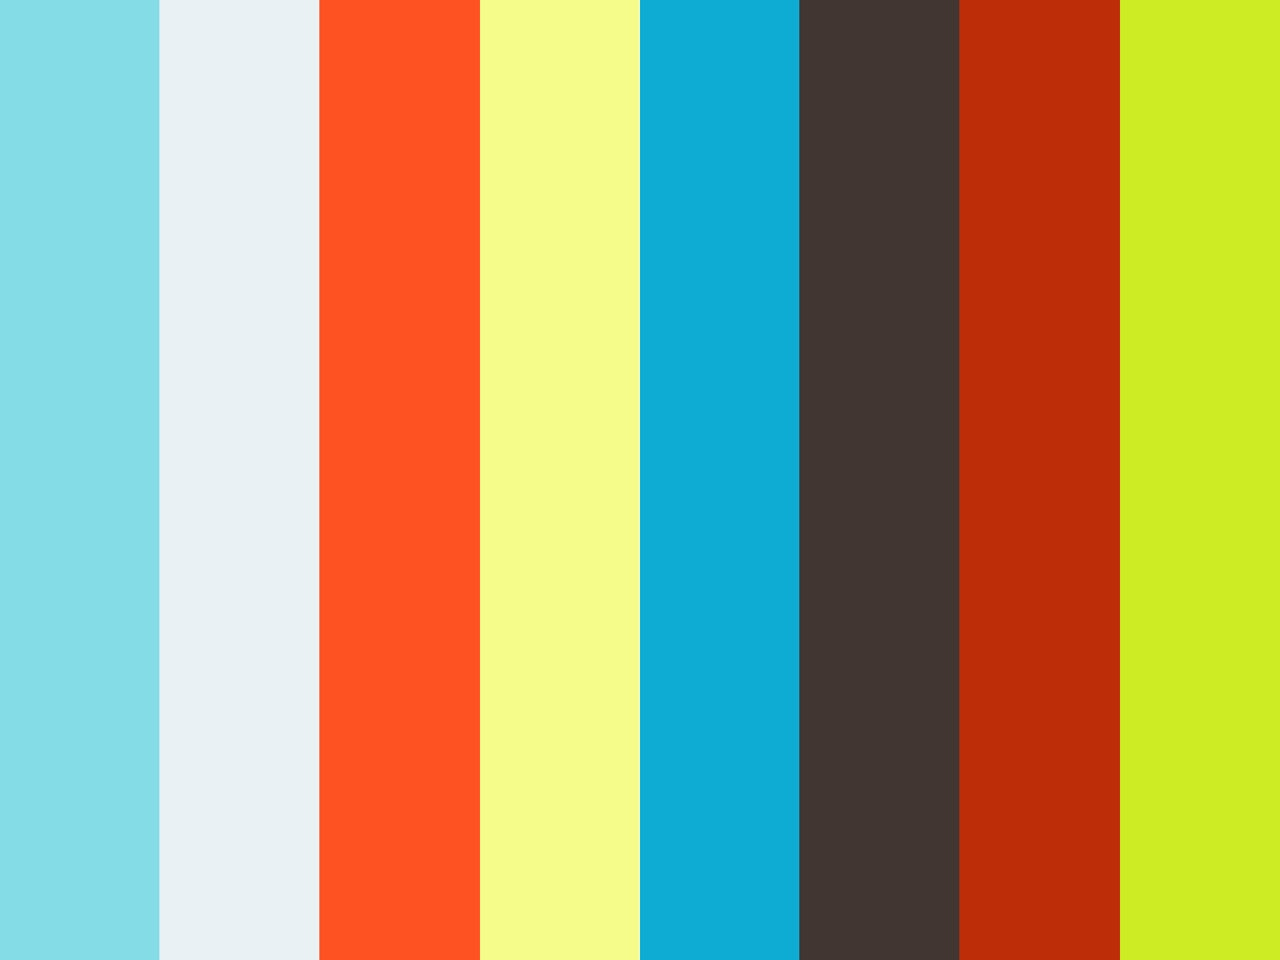 metier du bois fabrication de vaisselle artisanale on vimeo. Black Bedroom Furniture Sets. Home Design Ideas